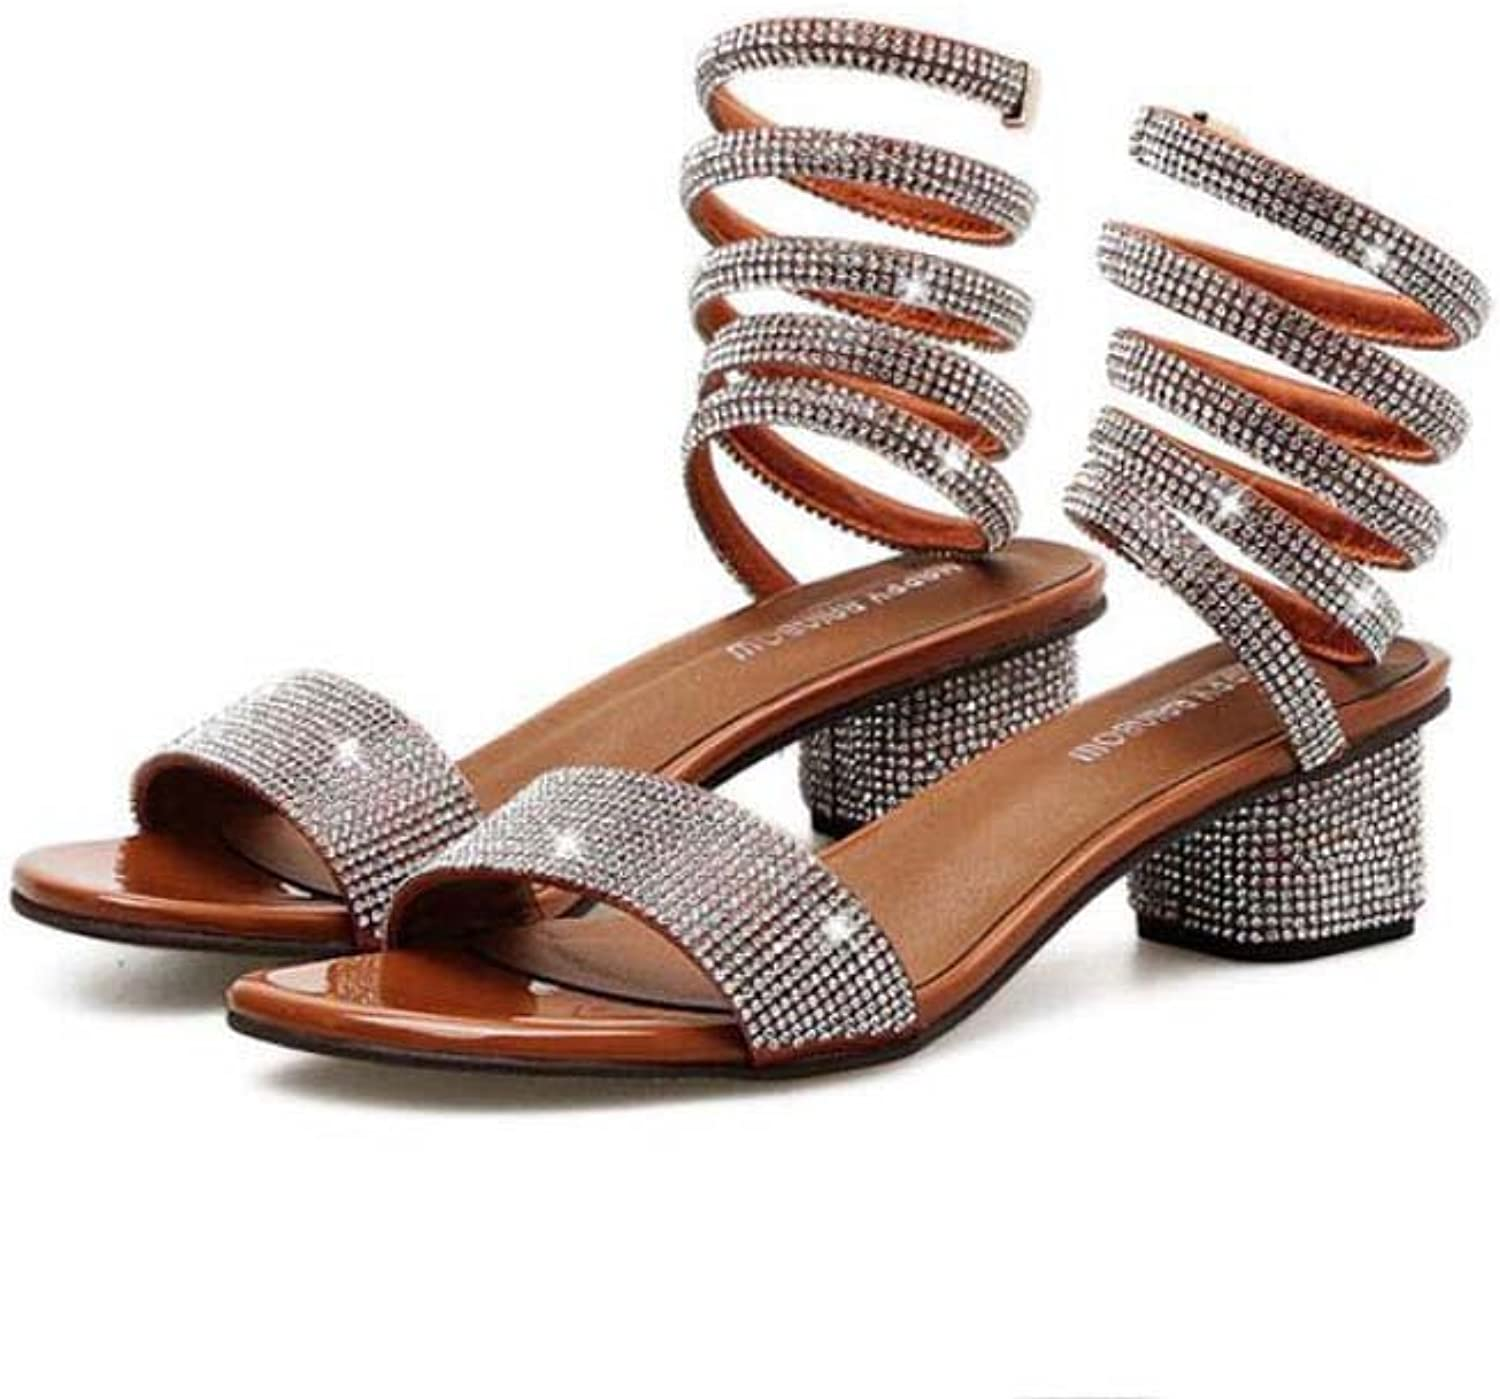 Pump 4.5cm Rhinestone Chunkly Heel Ankel Strap Sandals Serpentine Winding Spring Dress shoes Women Sweet Open Toe D'Orsay Bling OL Court shoes Roma shoes EU Size 34-40